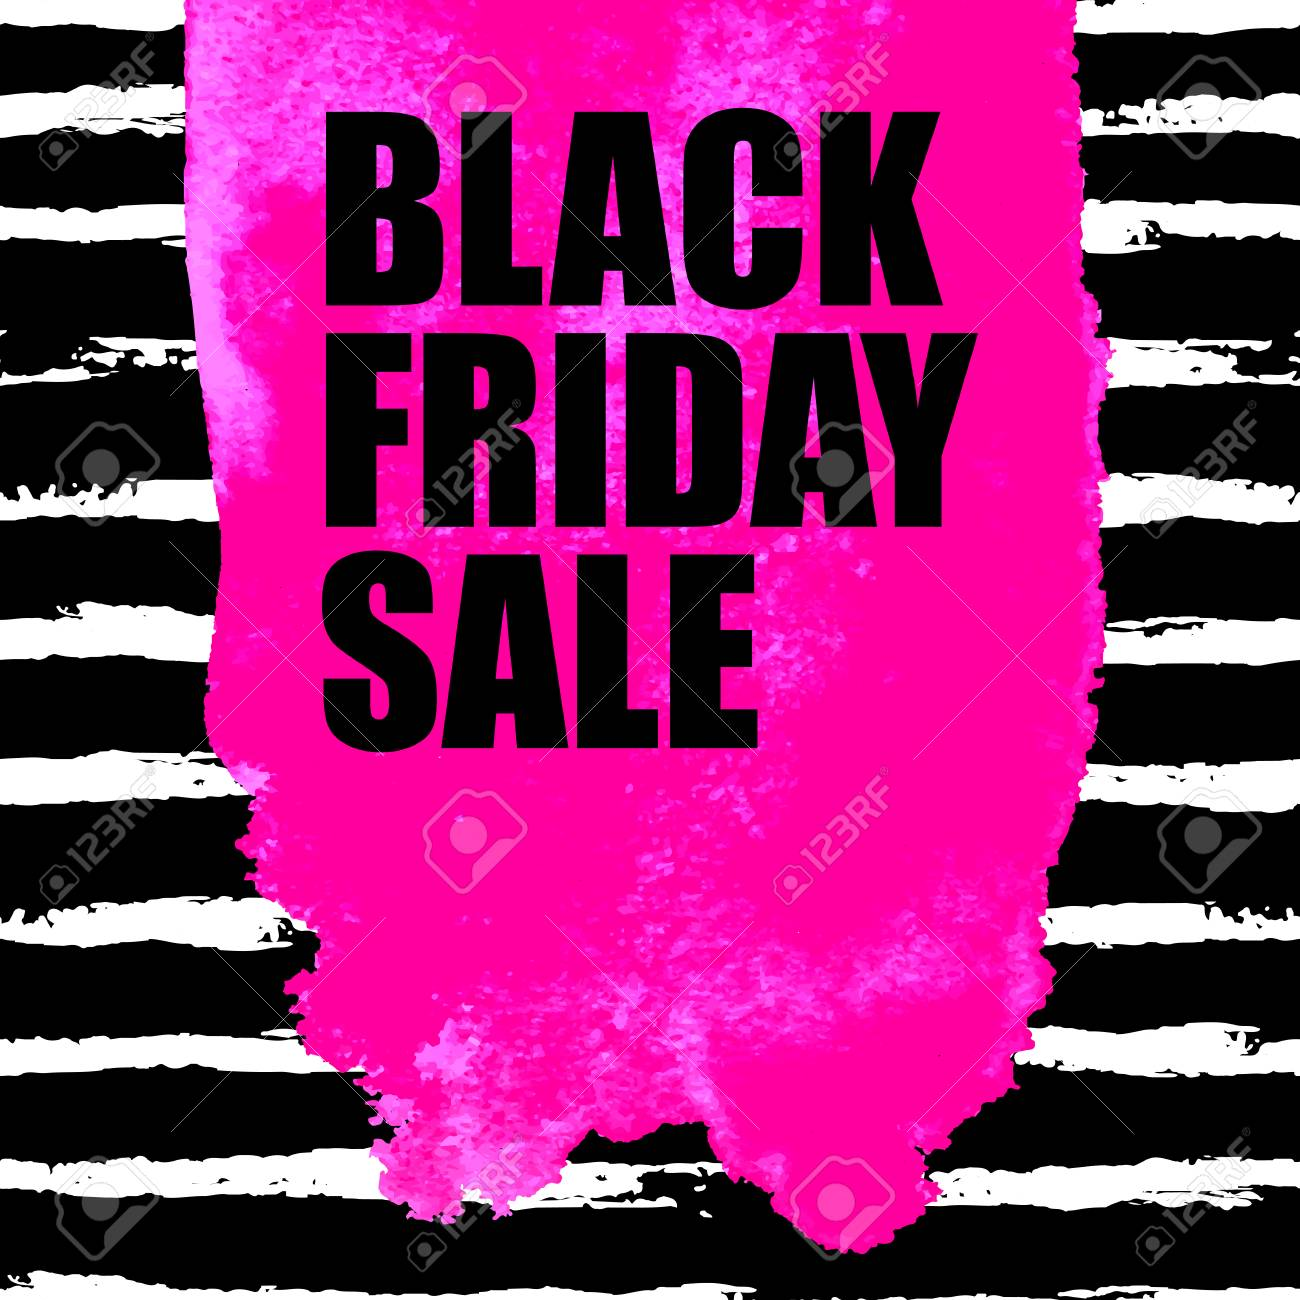 379454baf28 A Vector illustration of Black Friday Sale banner with pink watercolor spot  on dark watercolor brush